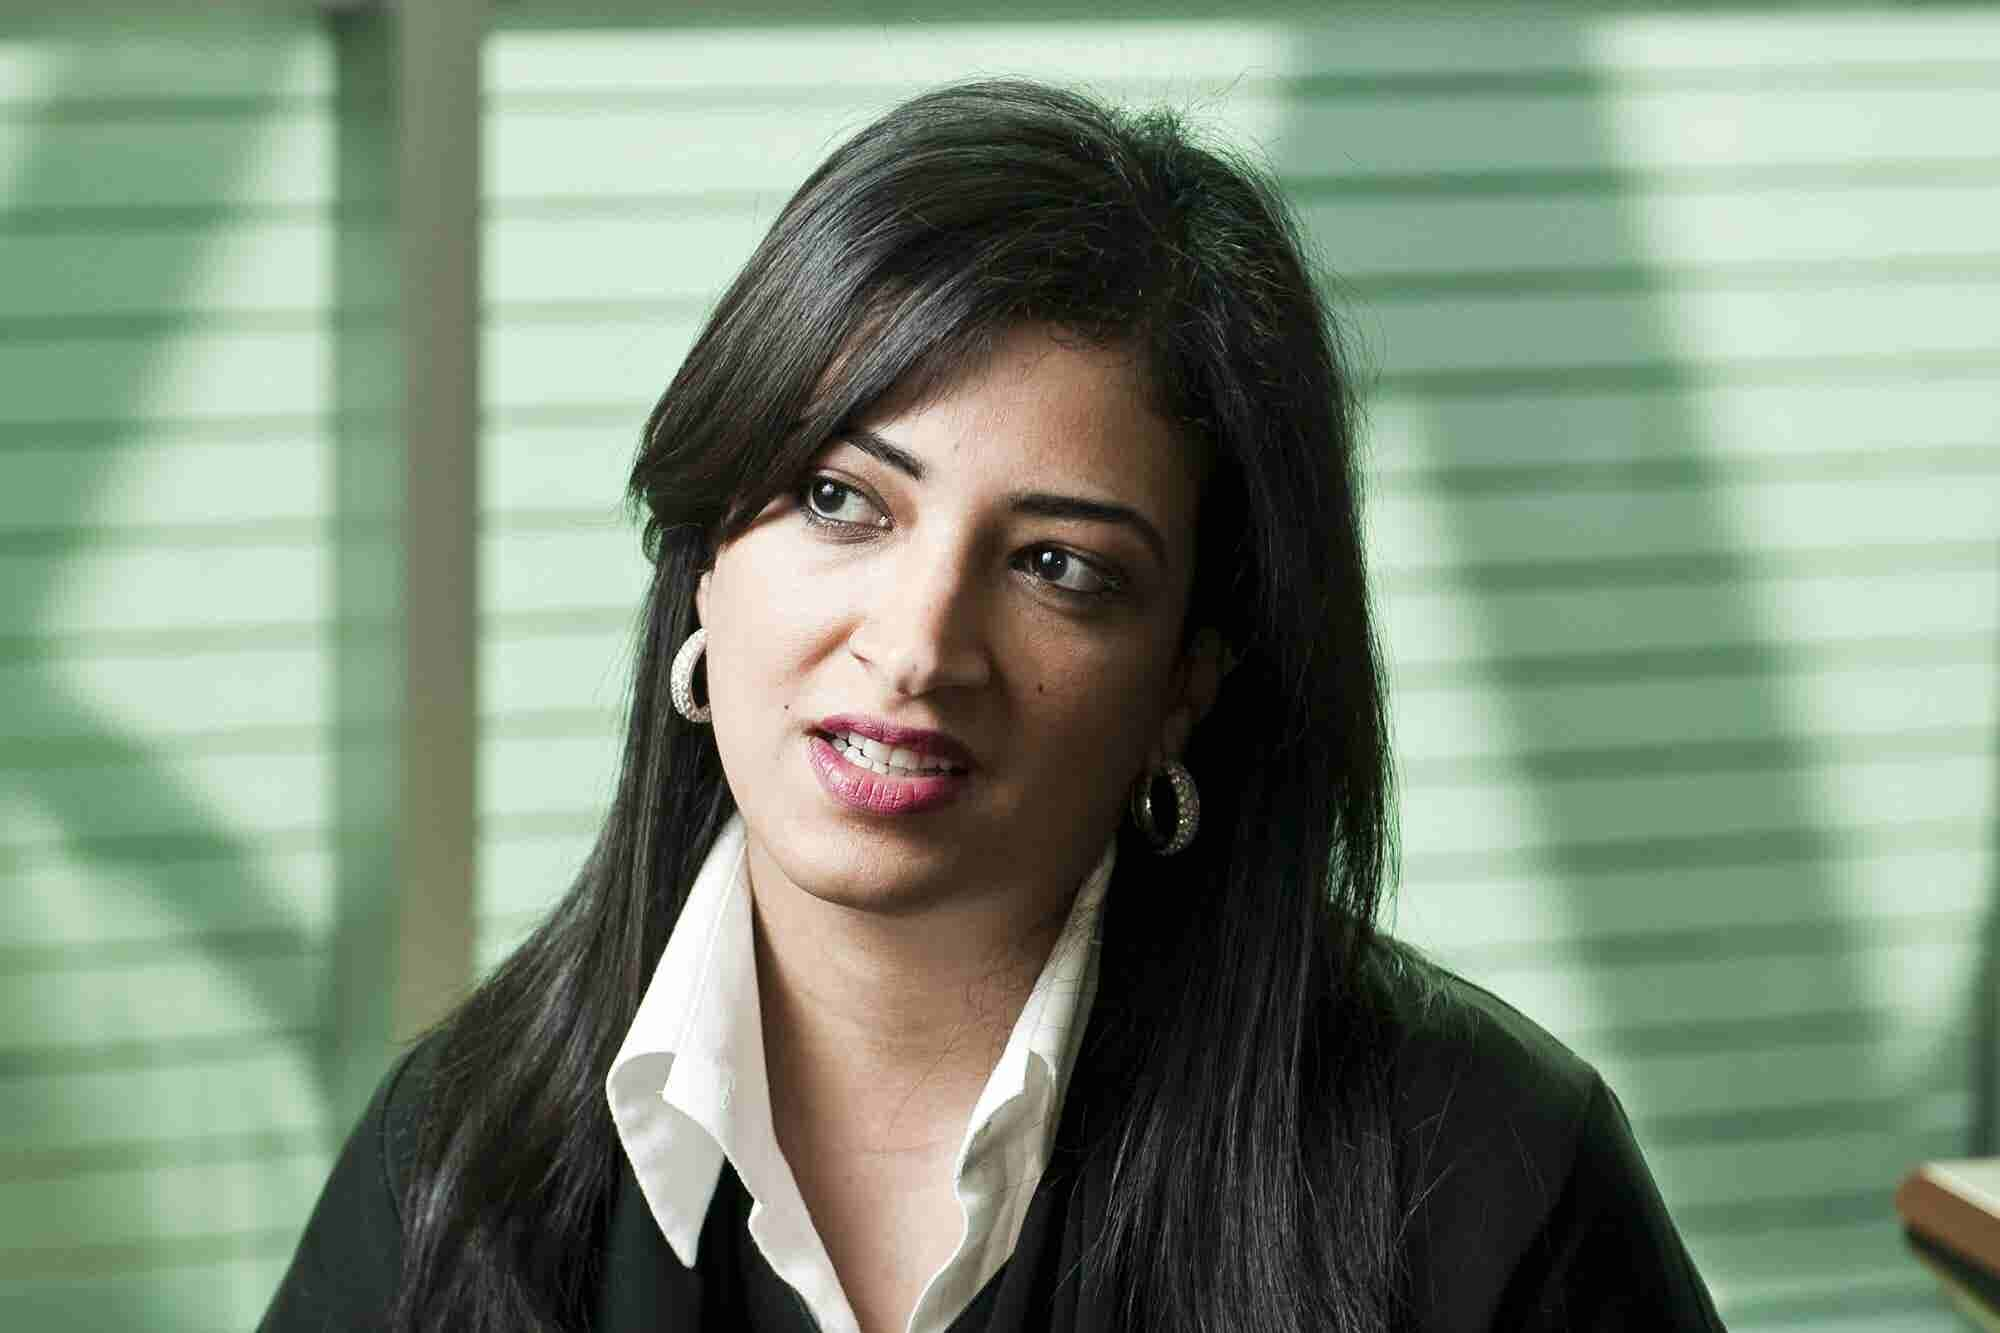 """""""The UAE Has Come Of Age In Terms Of Tech Prowess"""" - Muna Al Gurg, The Only Emirati Investor In Careem, On The Company's Acquisition By Uber"""